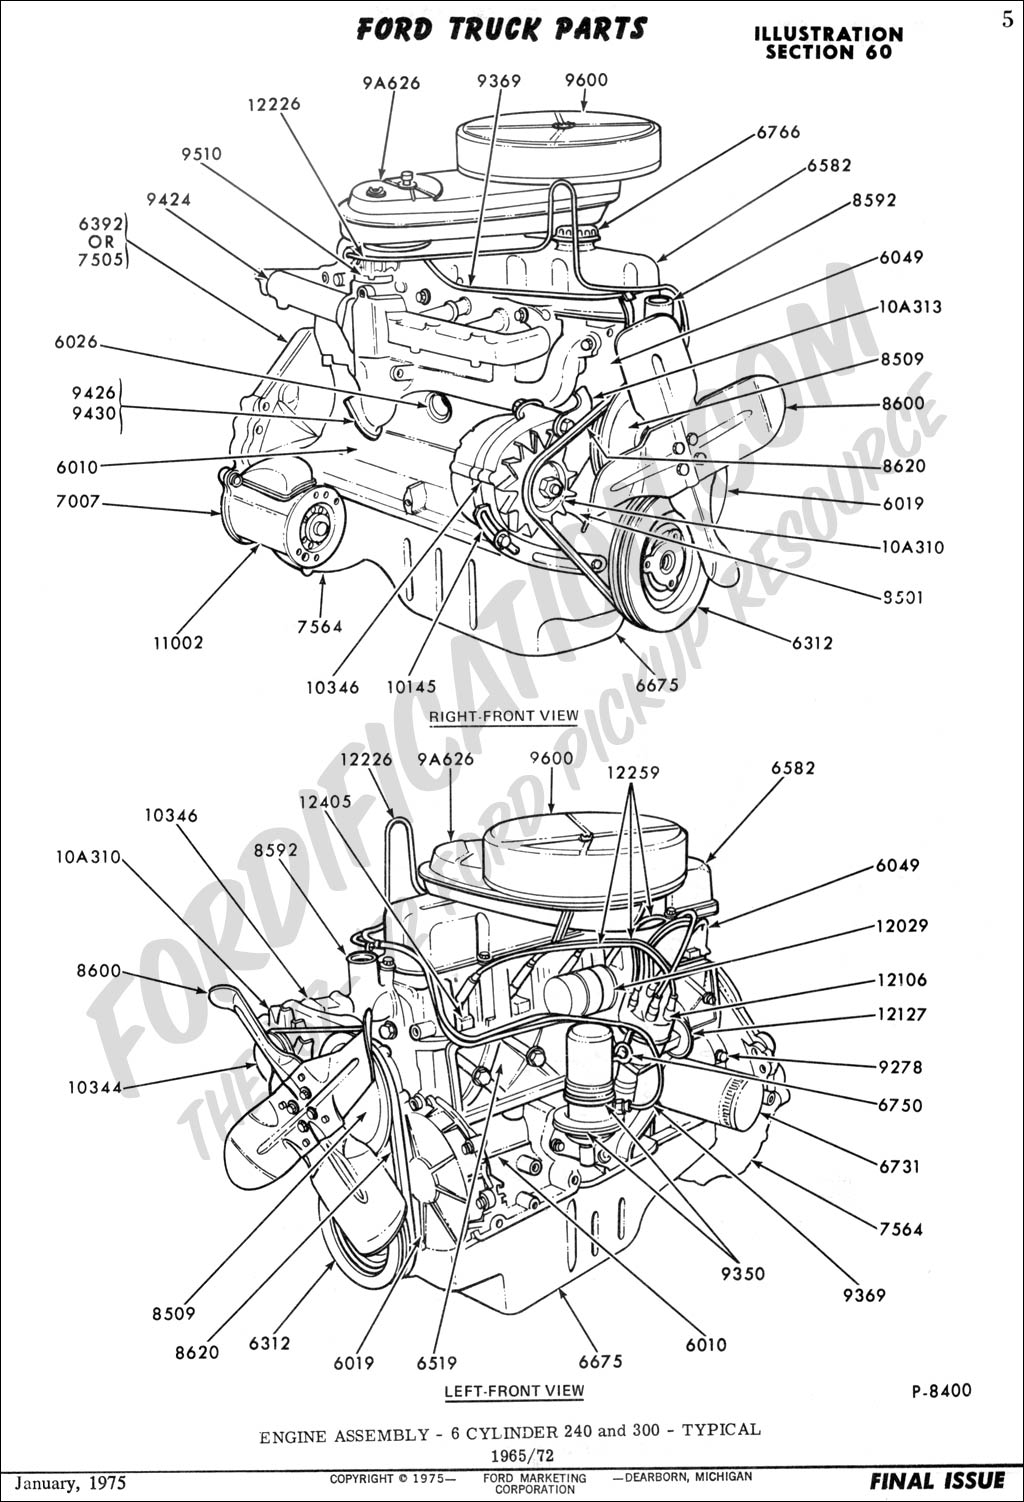 1970 ford 302 engine diagram 1969 ford 302 engine diagram ford truck technical drawings and schematics - section e ... #12